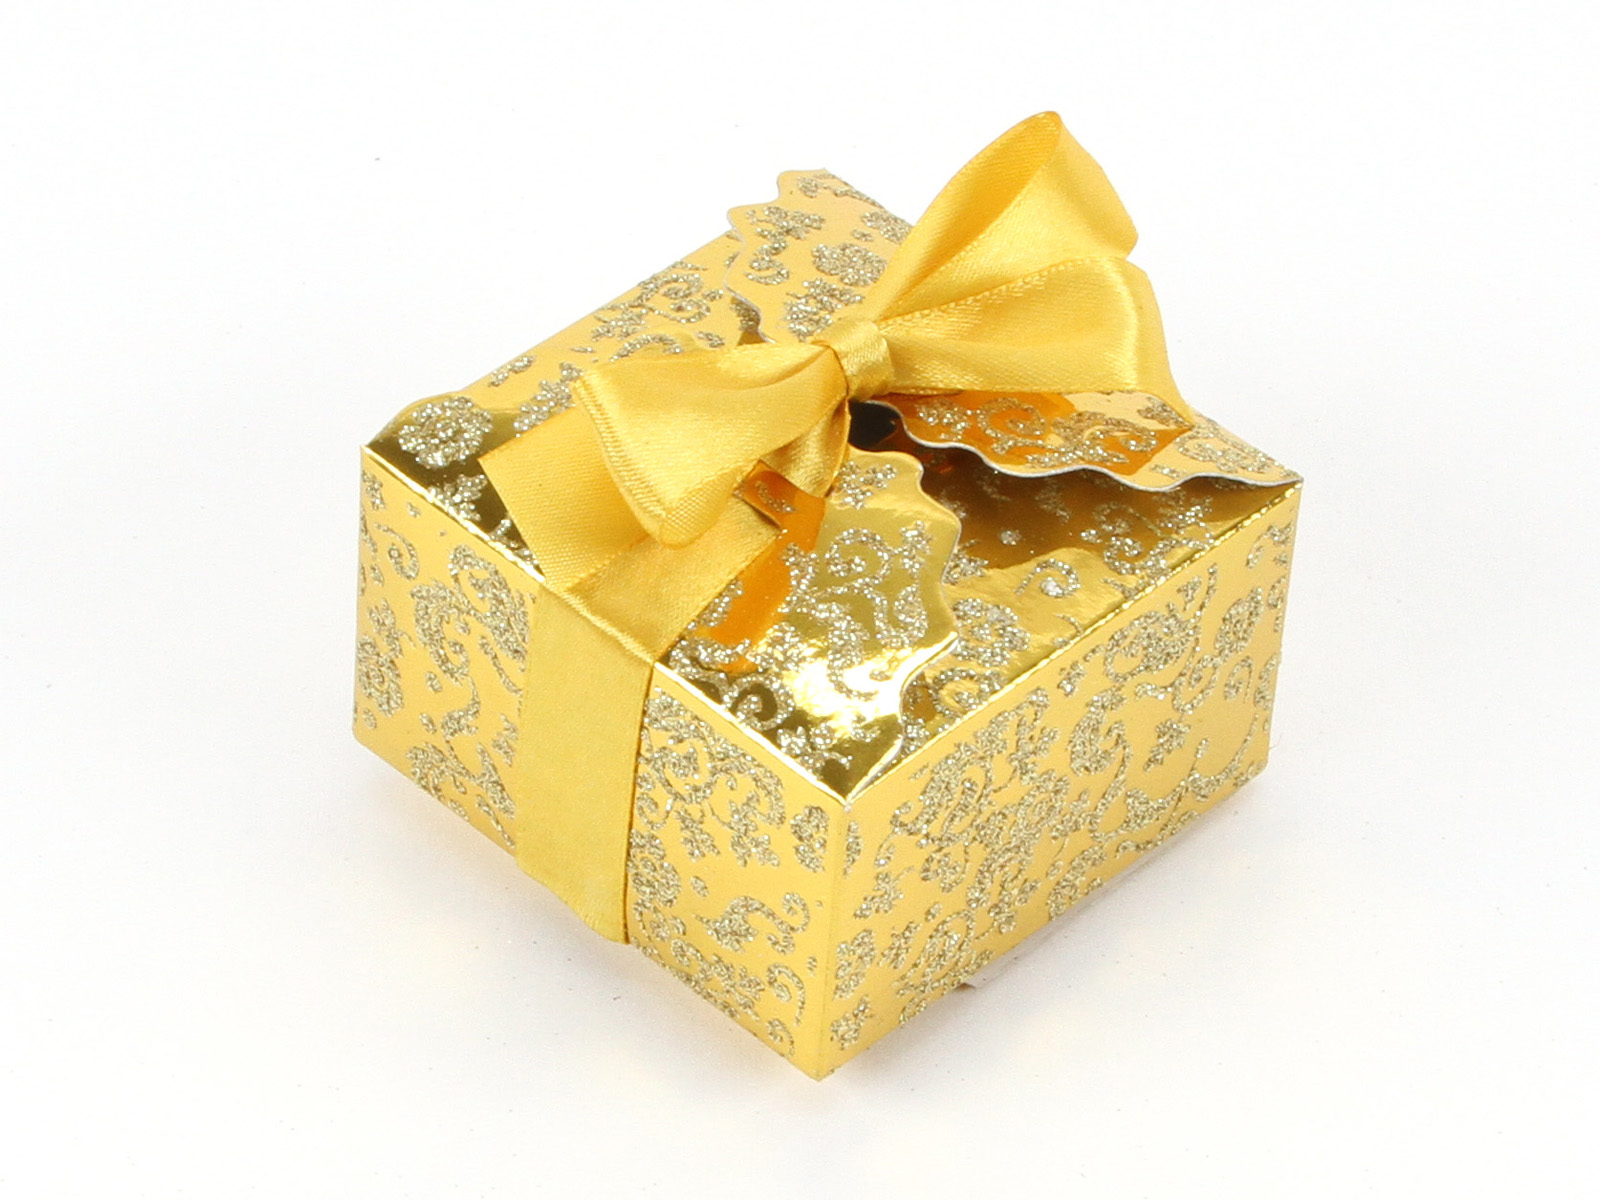 Wedding Gift Boxes Large : Details about 200 Large Ribbon Wedding Favor Gift Boxes Baby Shower ...